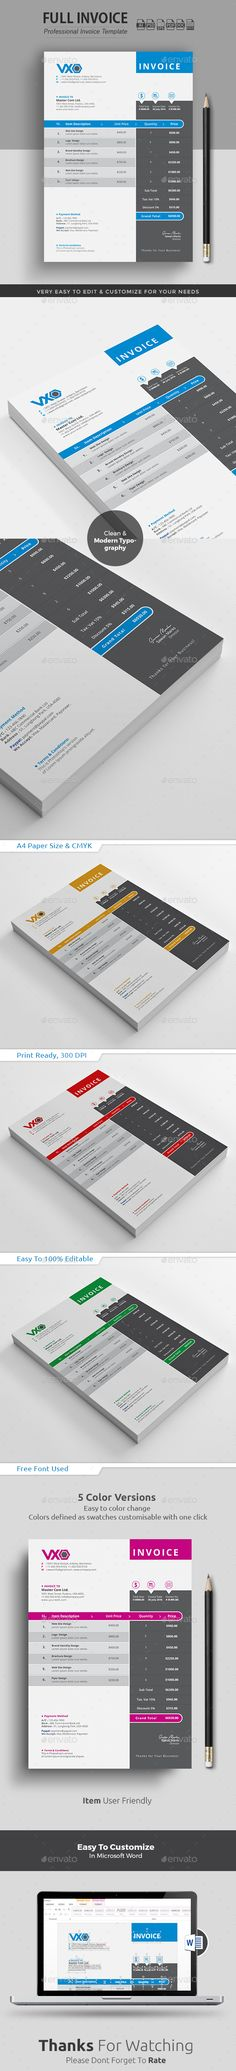 Naga - Invoice Template PSD A4 Invoice Templates Pinterest - create your own invoices